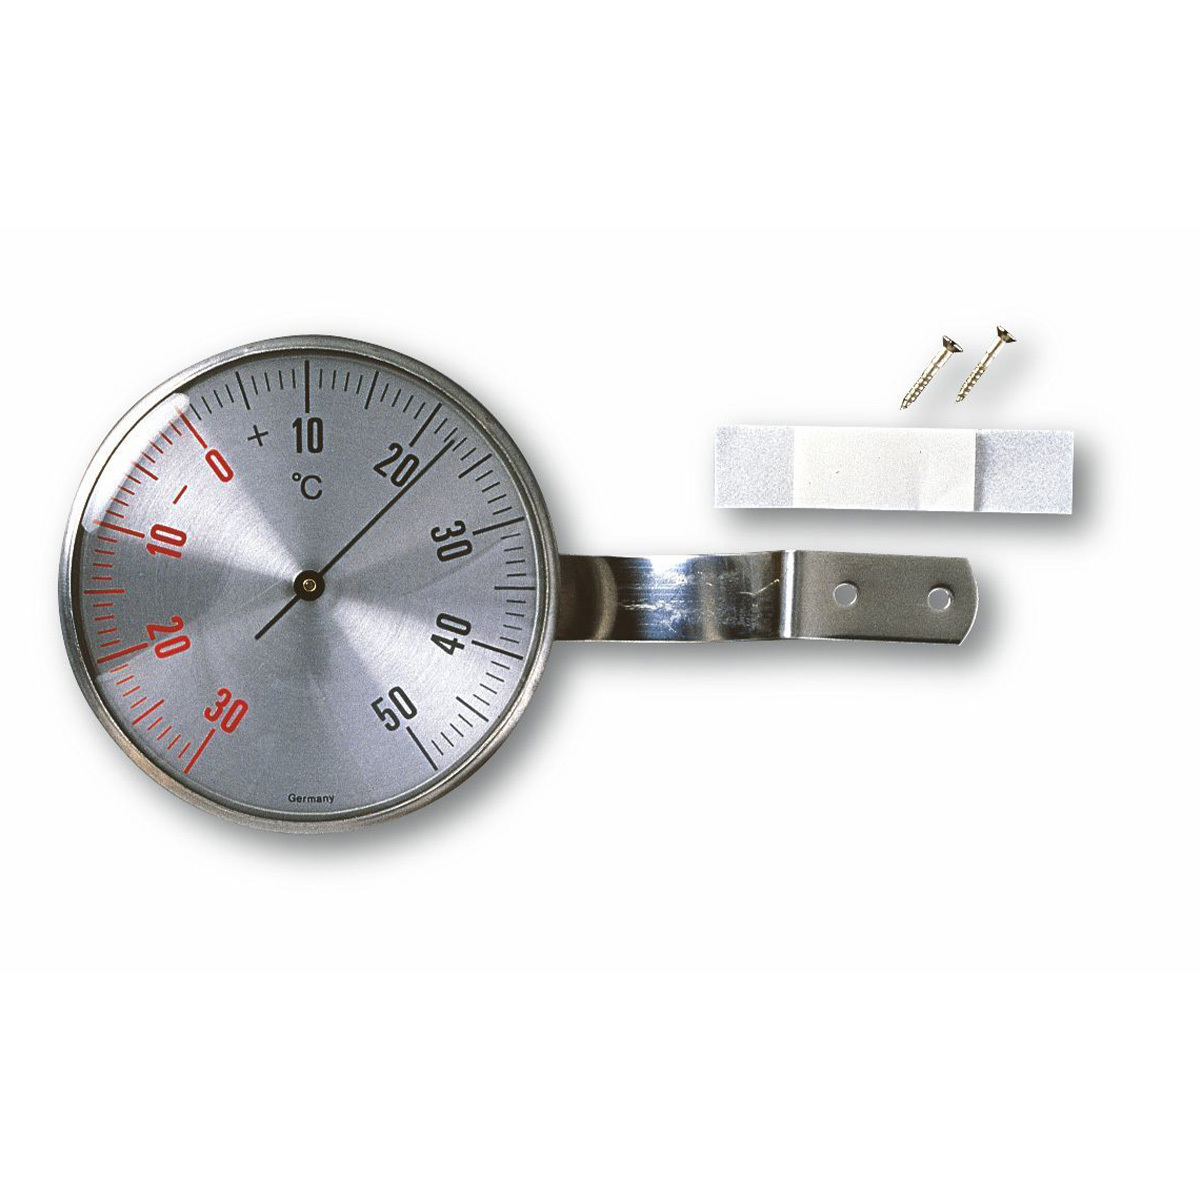 14-5001-analoges-fensterthermometer-1200x1200px.jpg